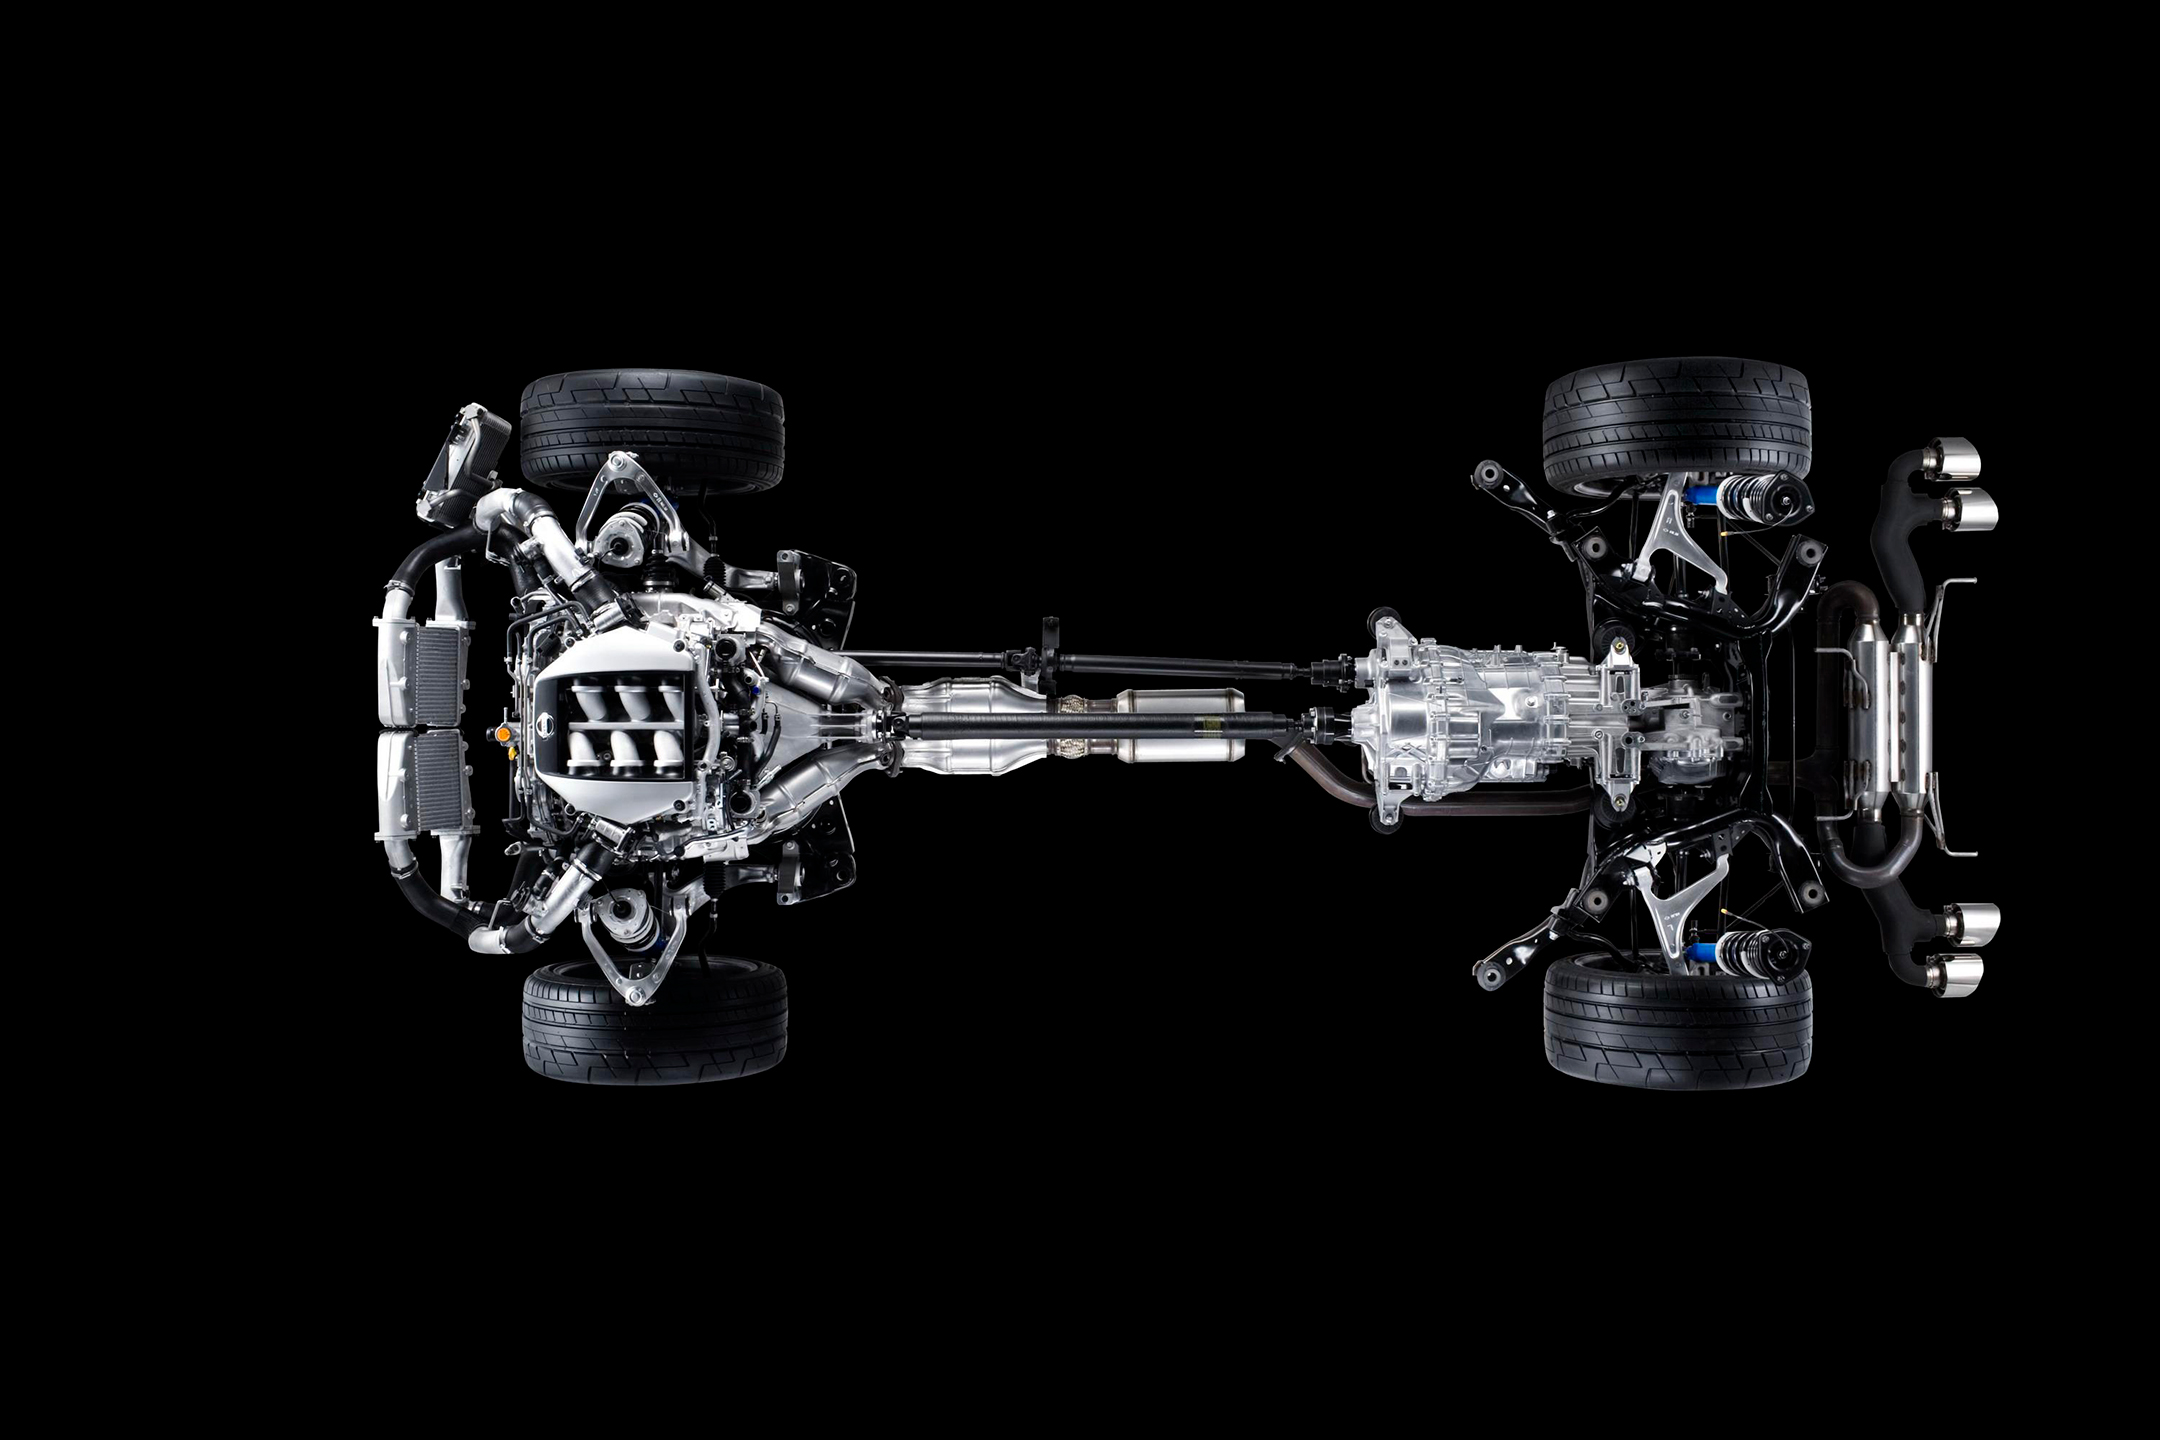 Nissan GT-R - 2010 - chassis / châssis - top view